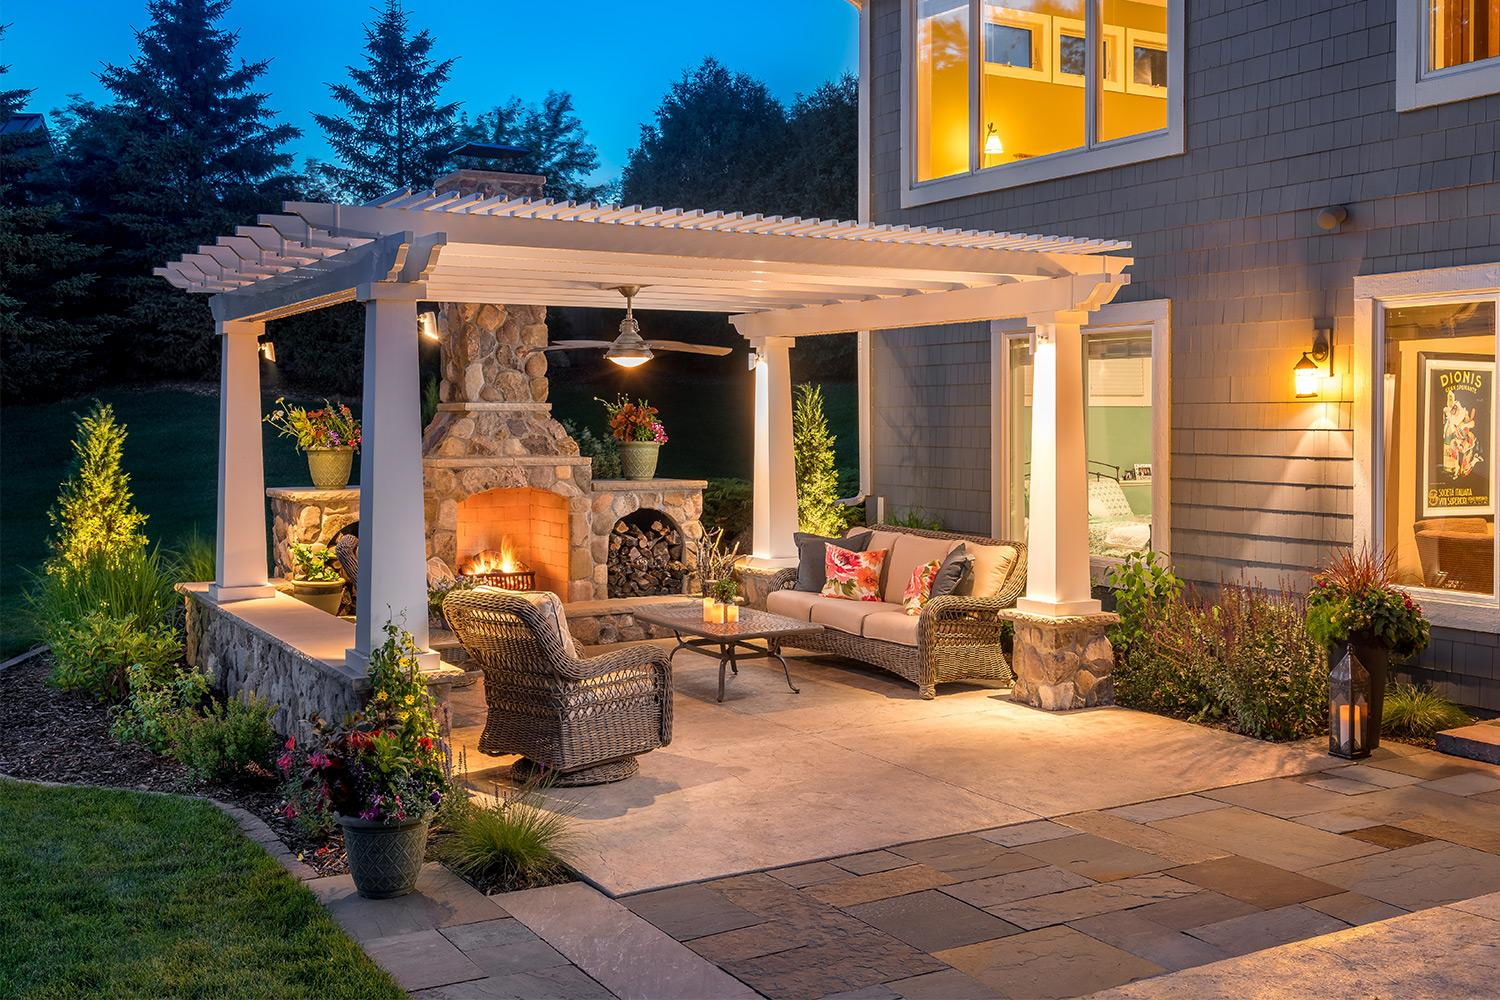 Outdoor living room patio with stone-faced fireplace underneath a white pergola at dusk